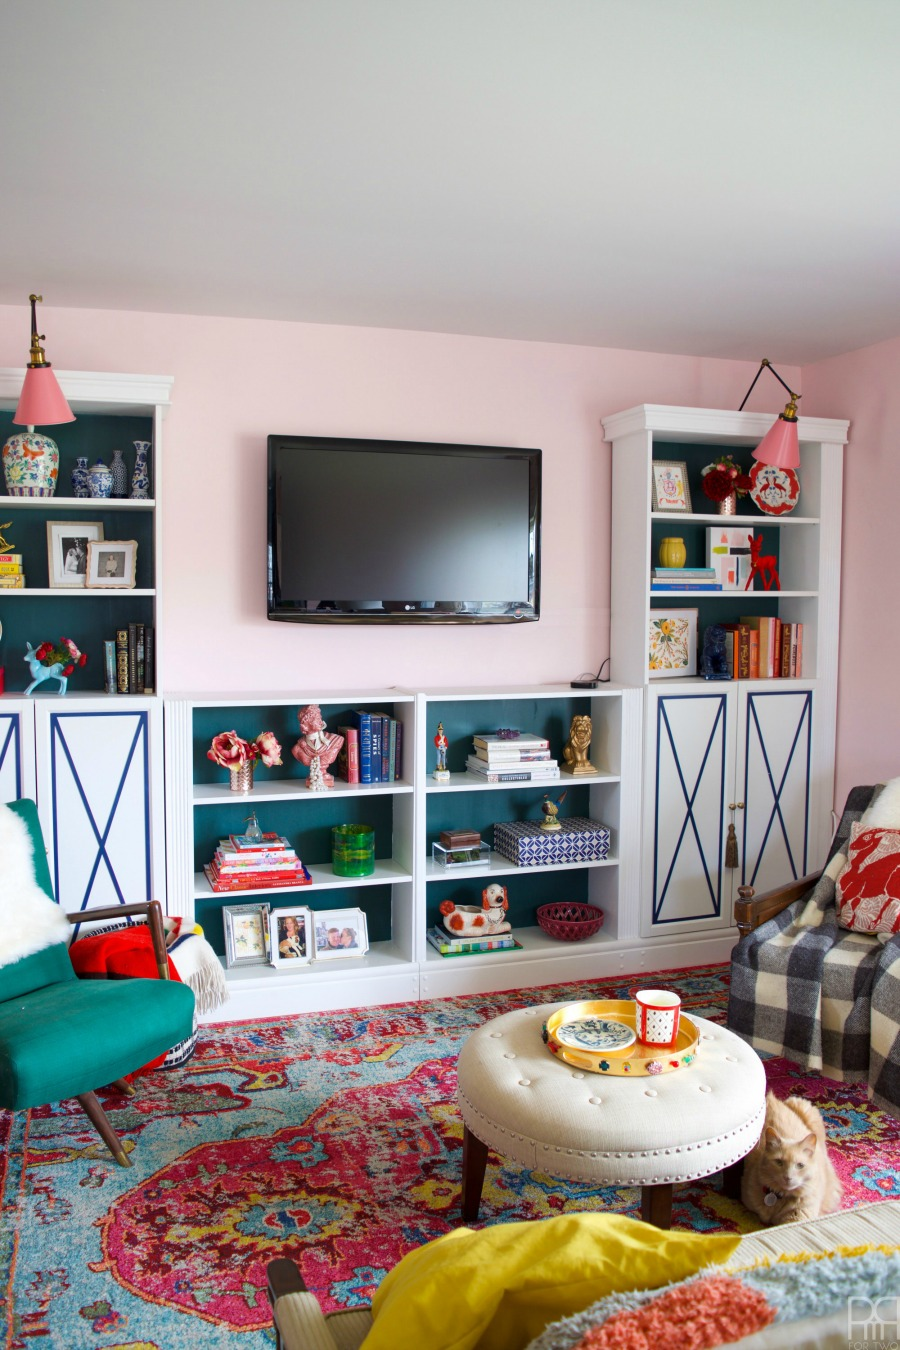 Eclectic Home Tour of PMQ for Two - get tons of renter friendly decorating and DIY ideas like how to make cheap bookcases look like custom built ins